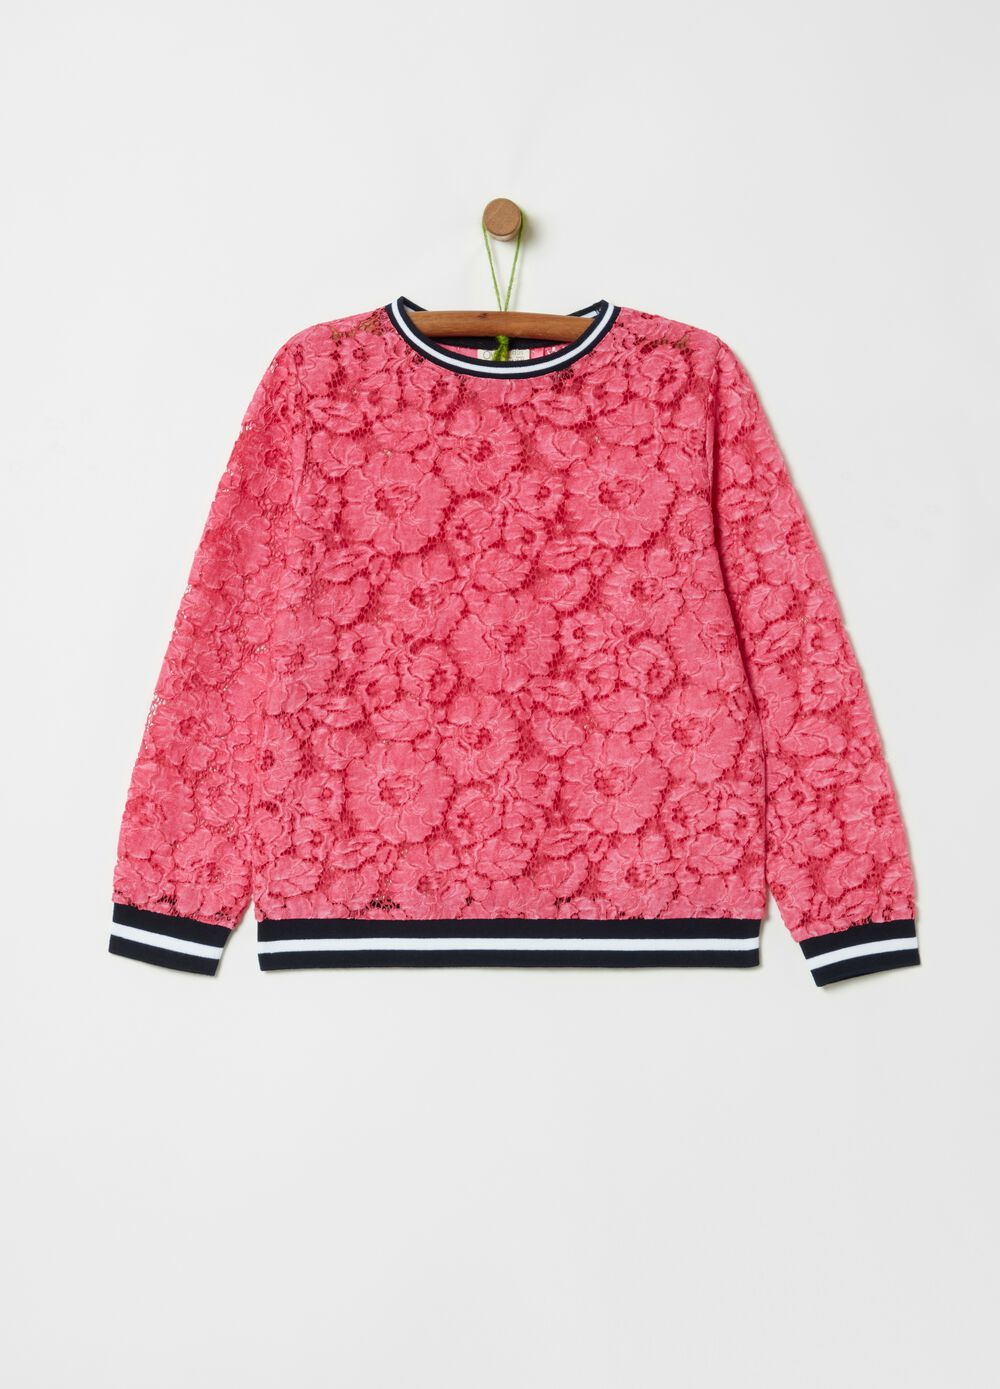 Lace-effect blouse with floral motifs